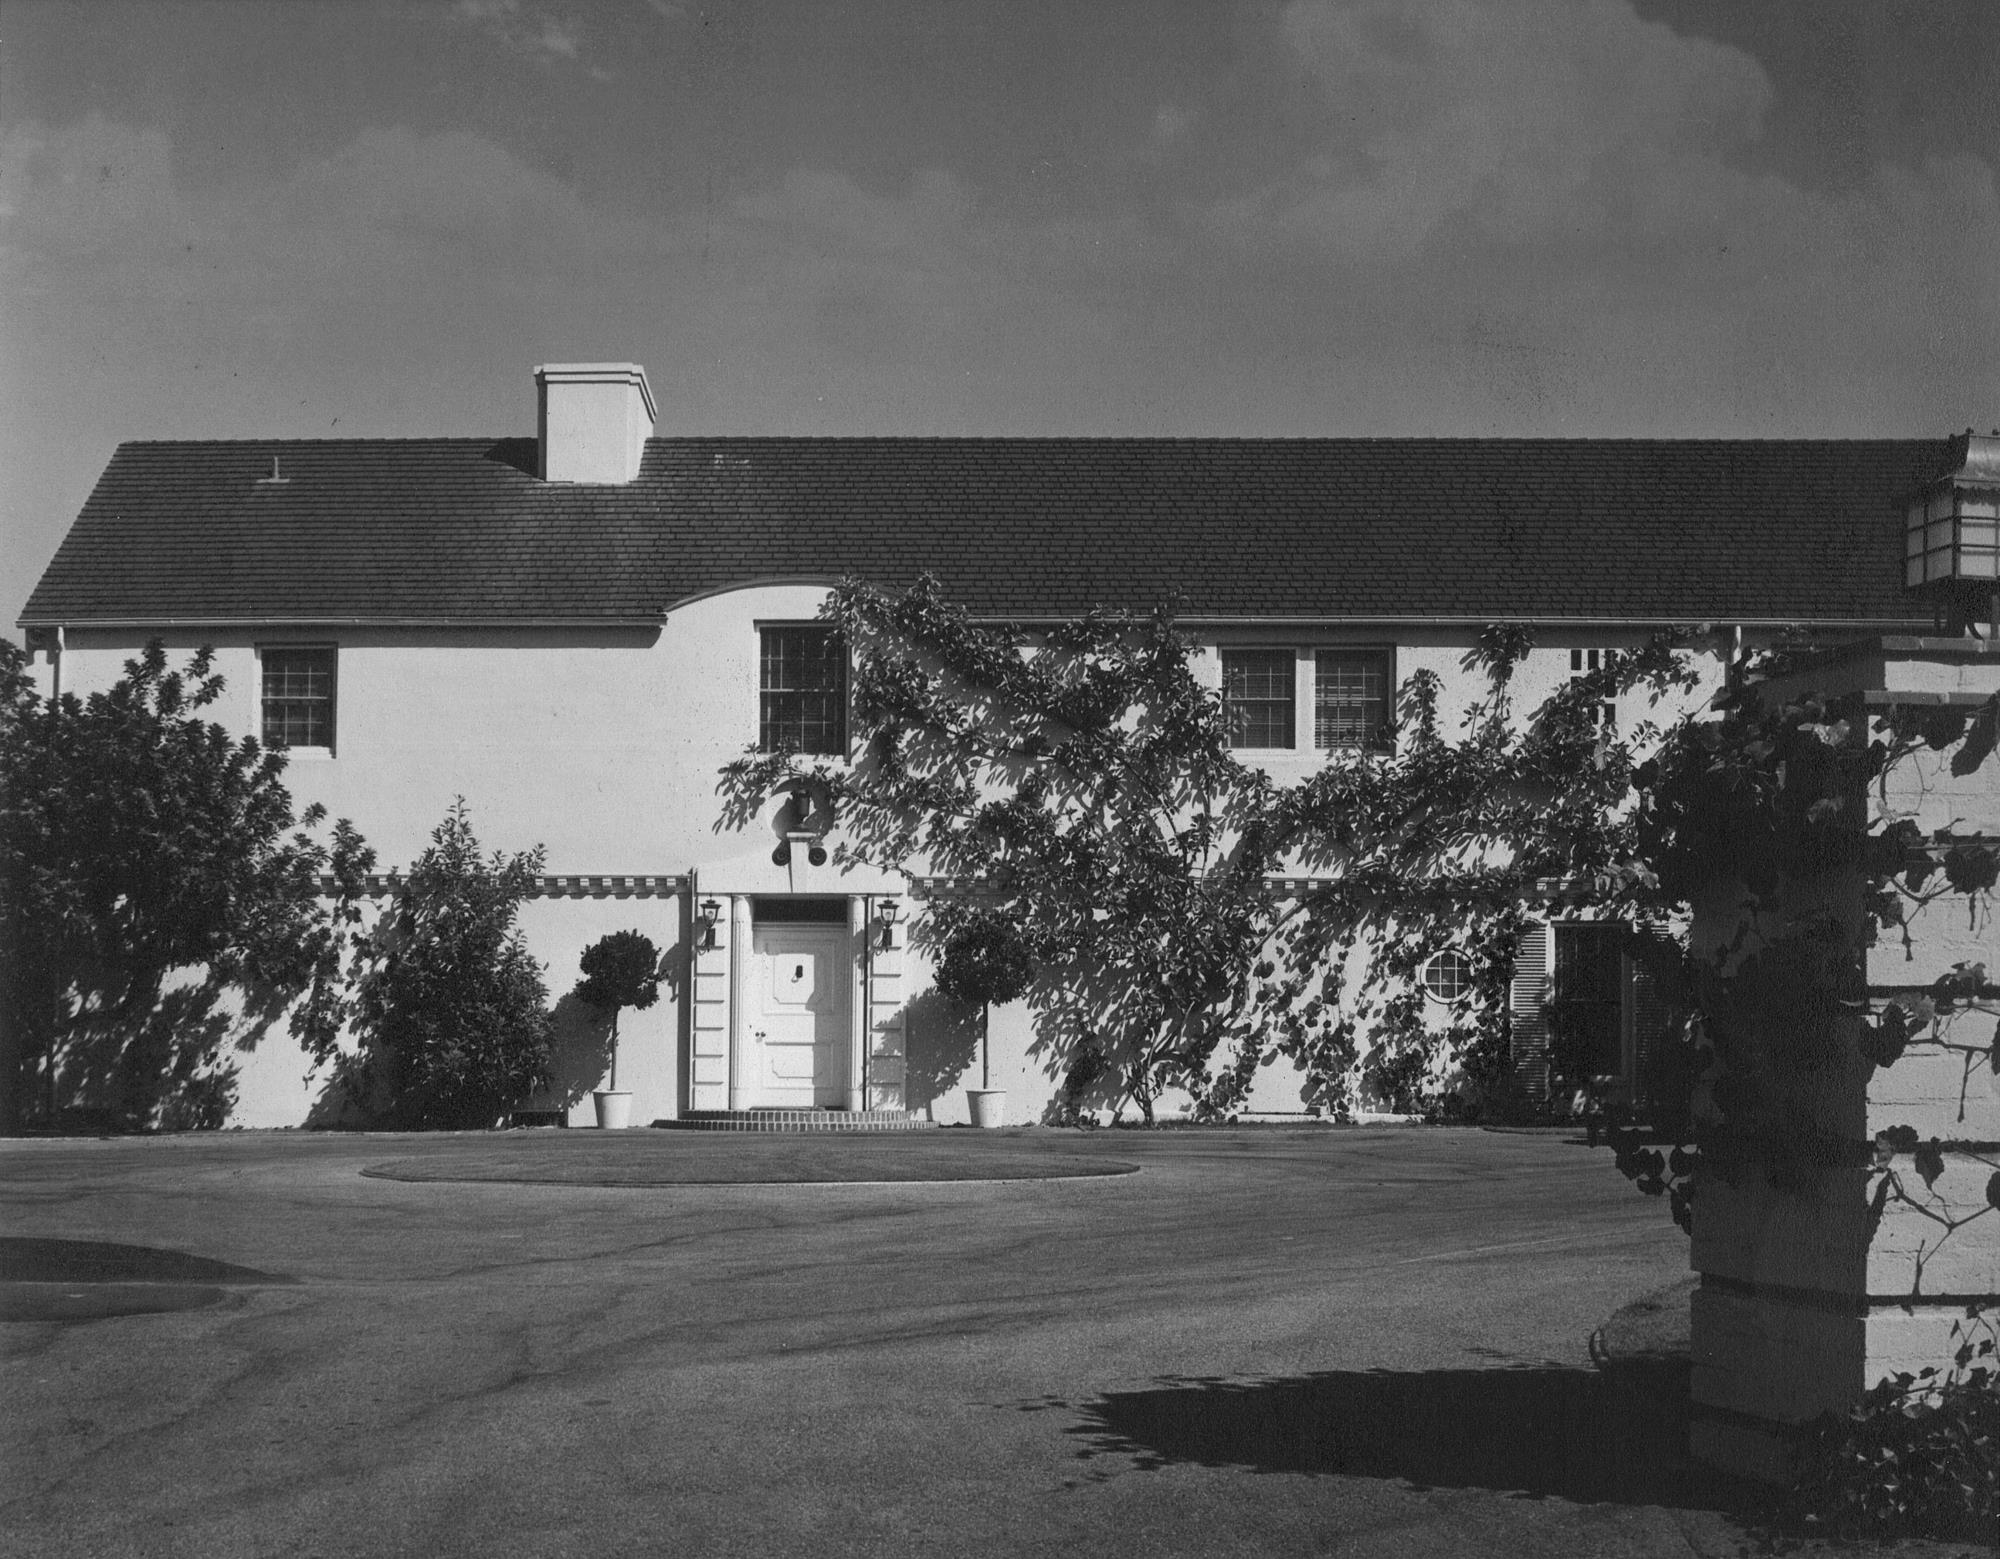 Wilkerson House_1938 Exterior 03_Grayscale